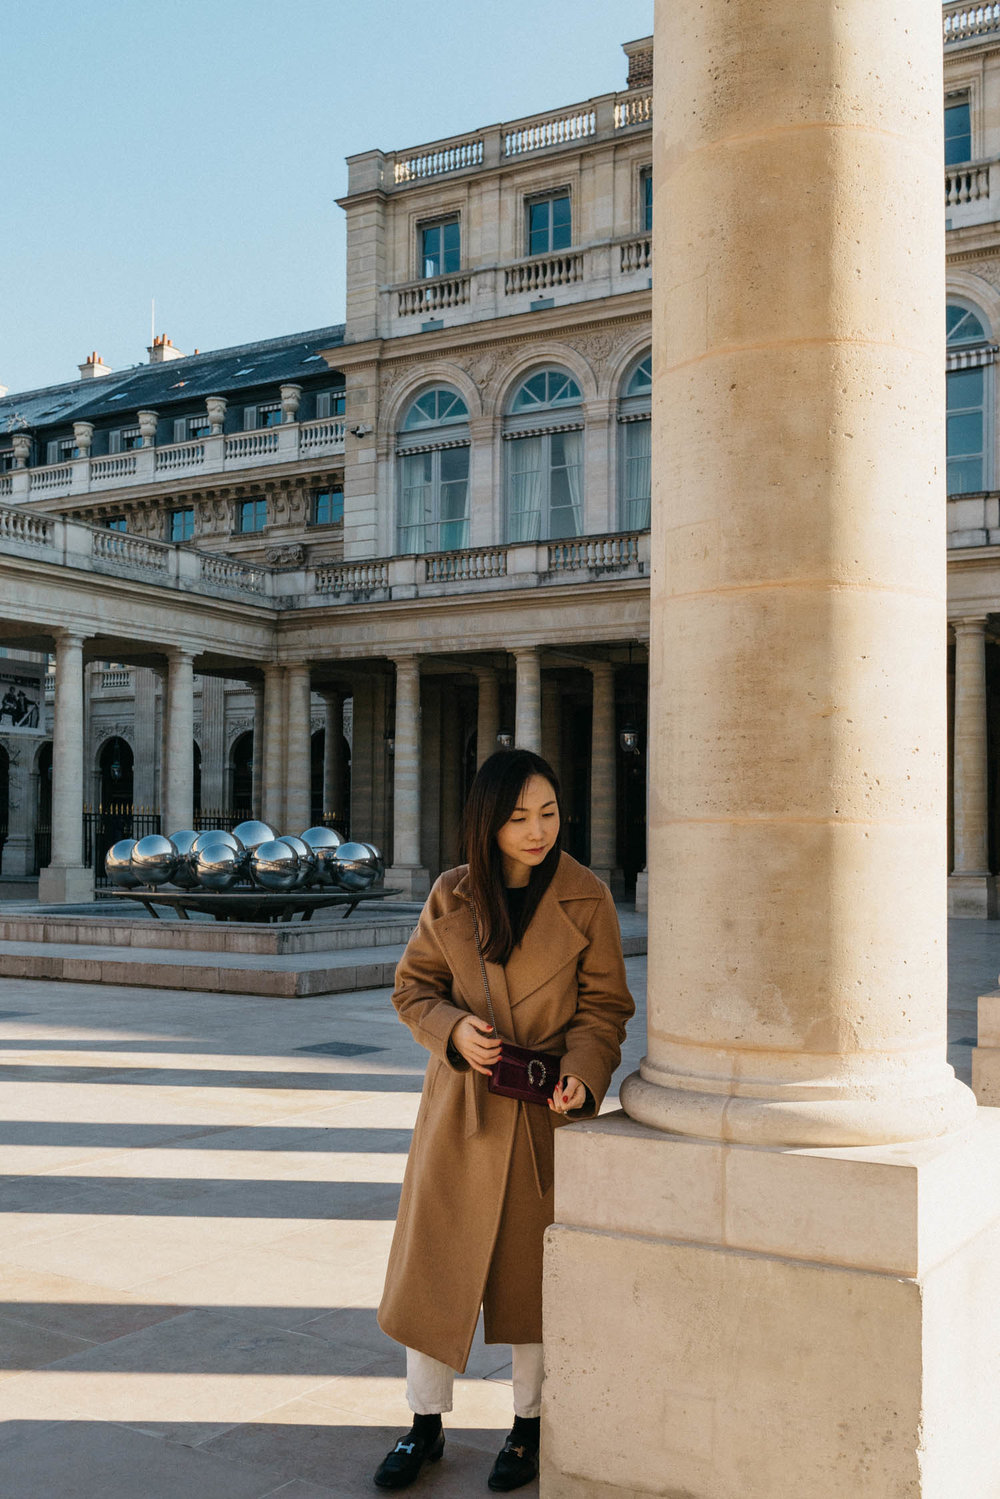 Julie  is wearing Max Mara Coat and Gucci Bag